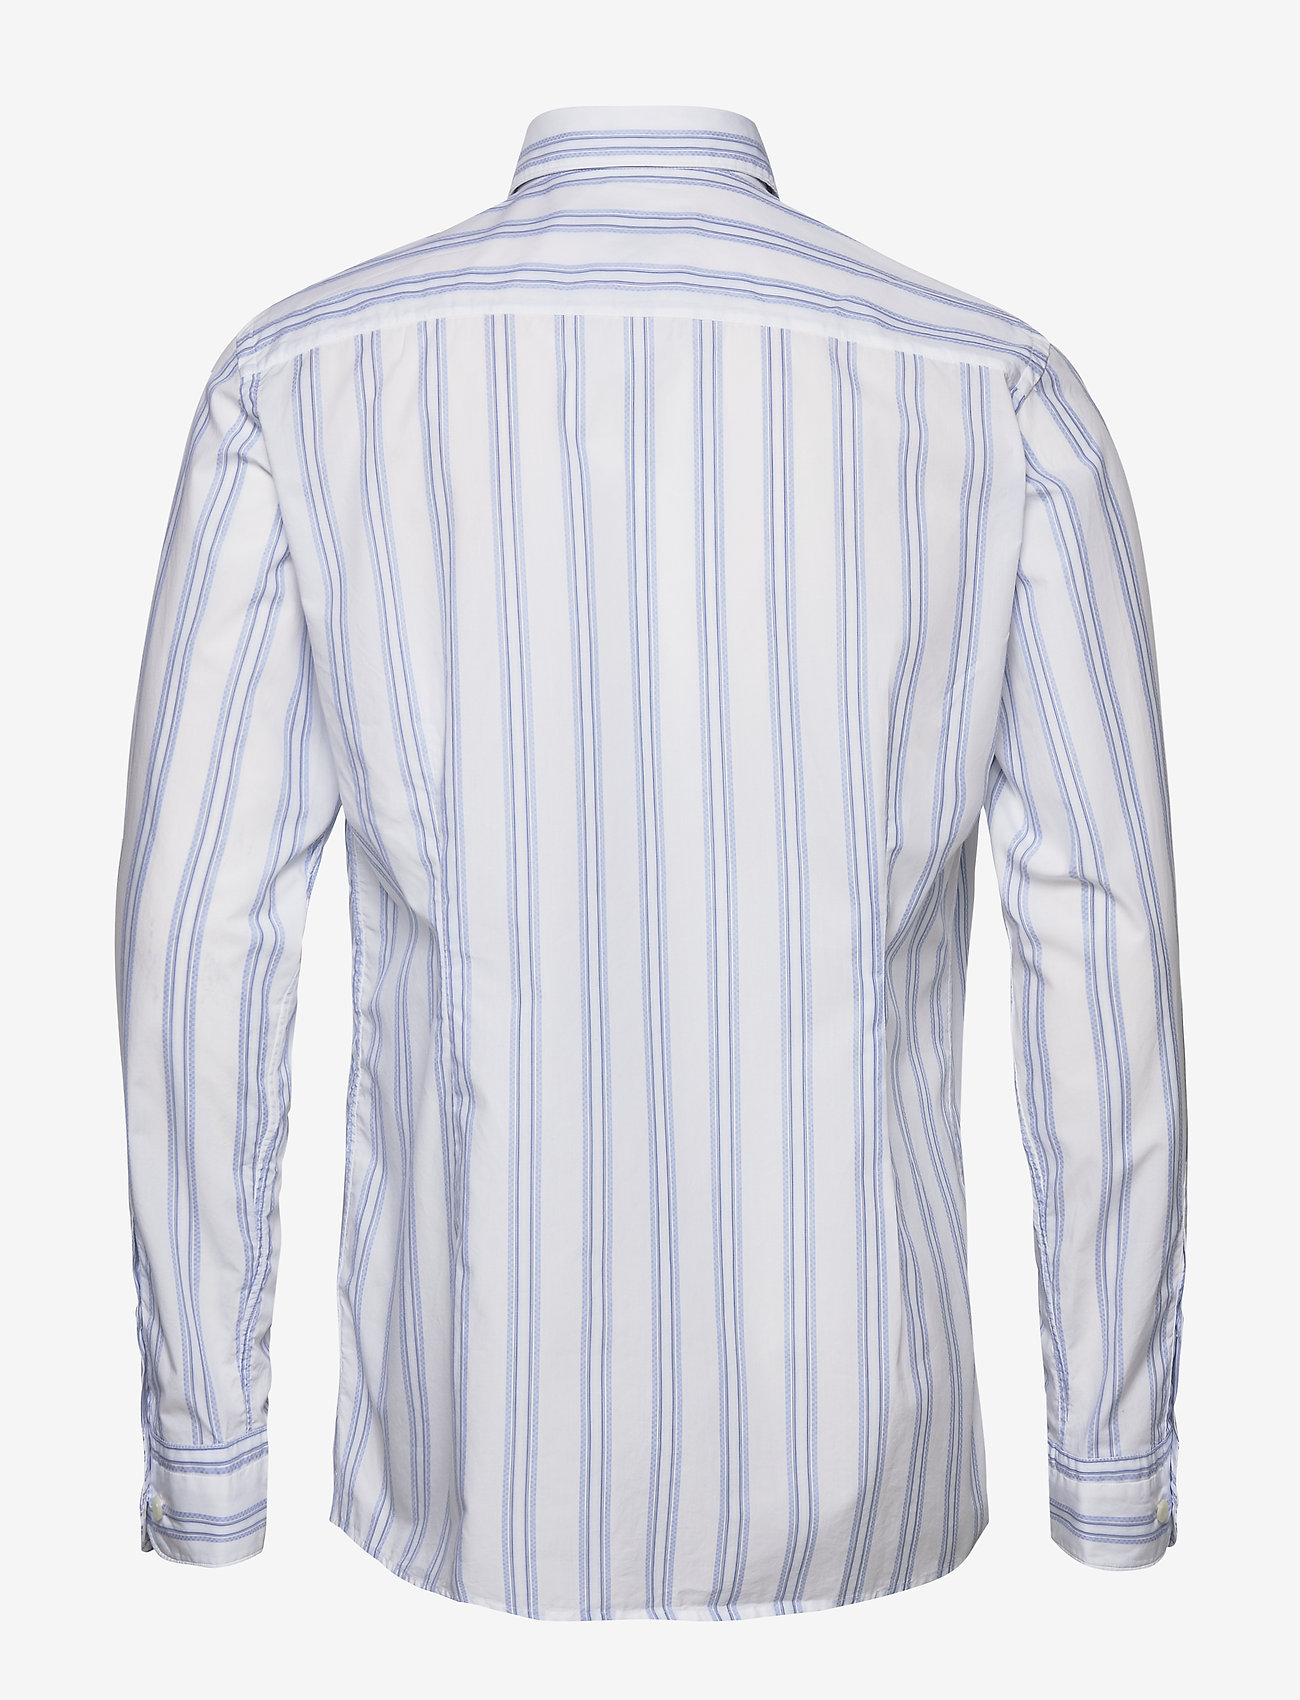 White Striped Shirt - Soft (White) (89.50 €) - Eton s46u5